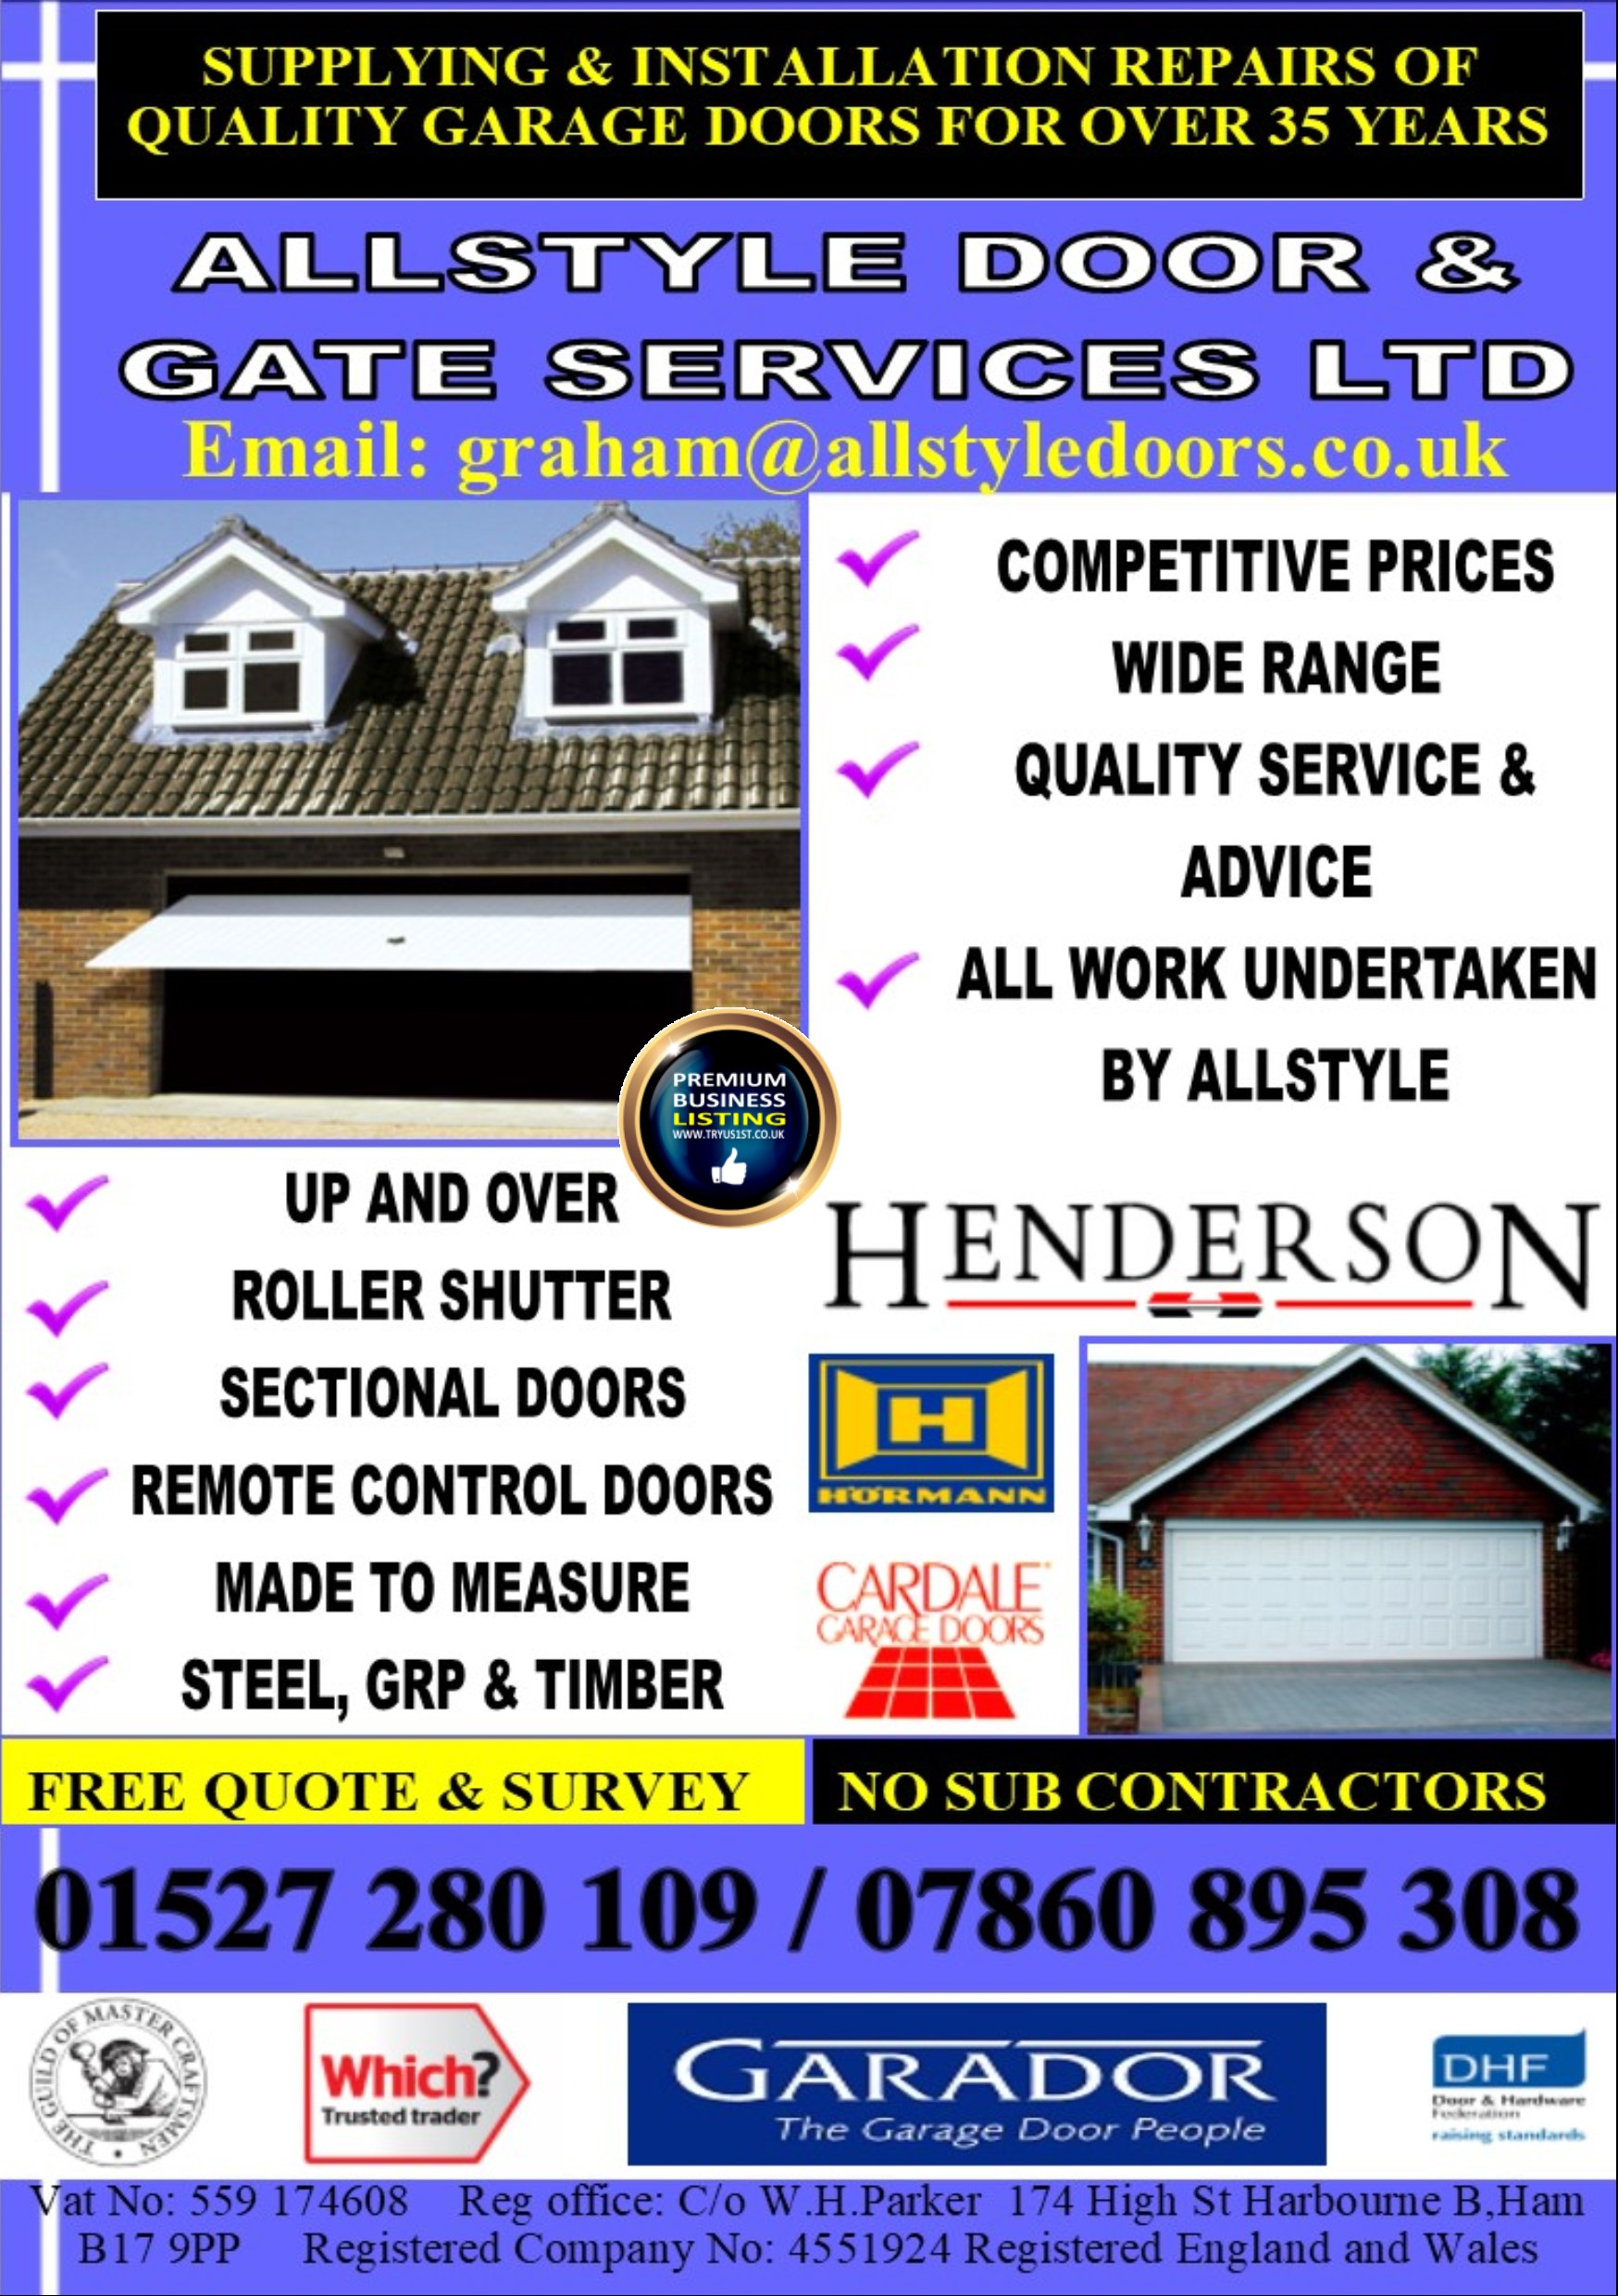 All Style Door & Gate Services